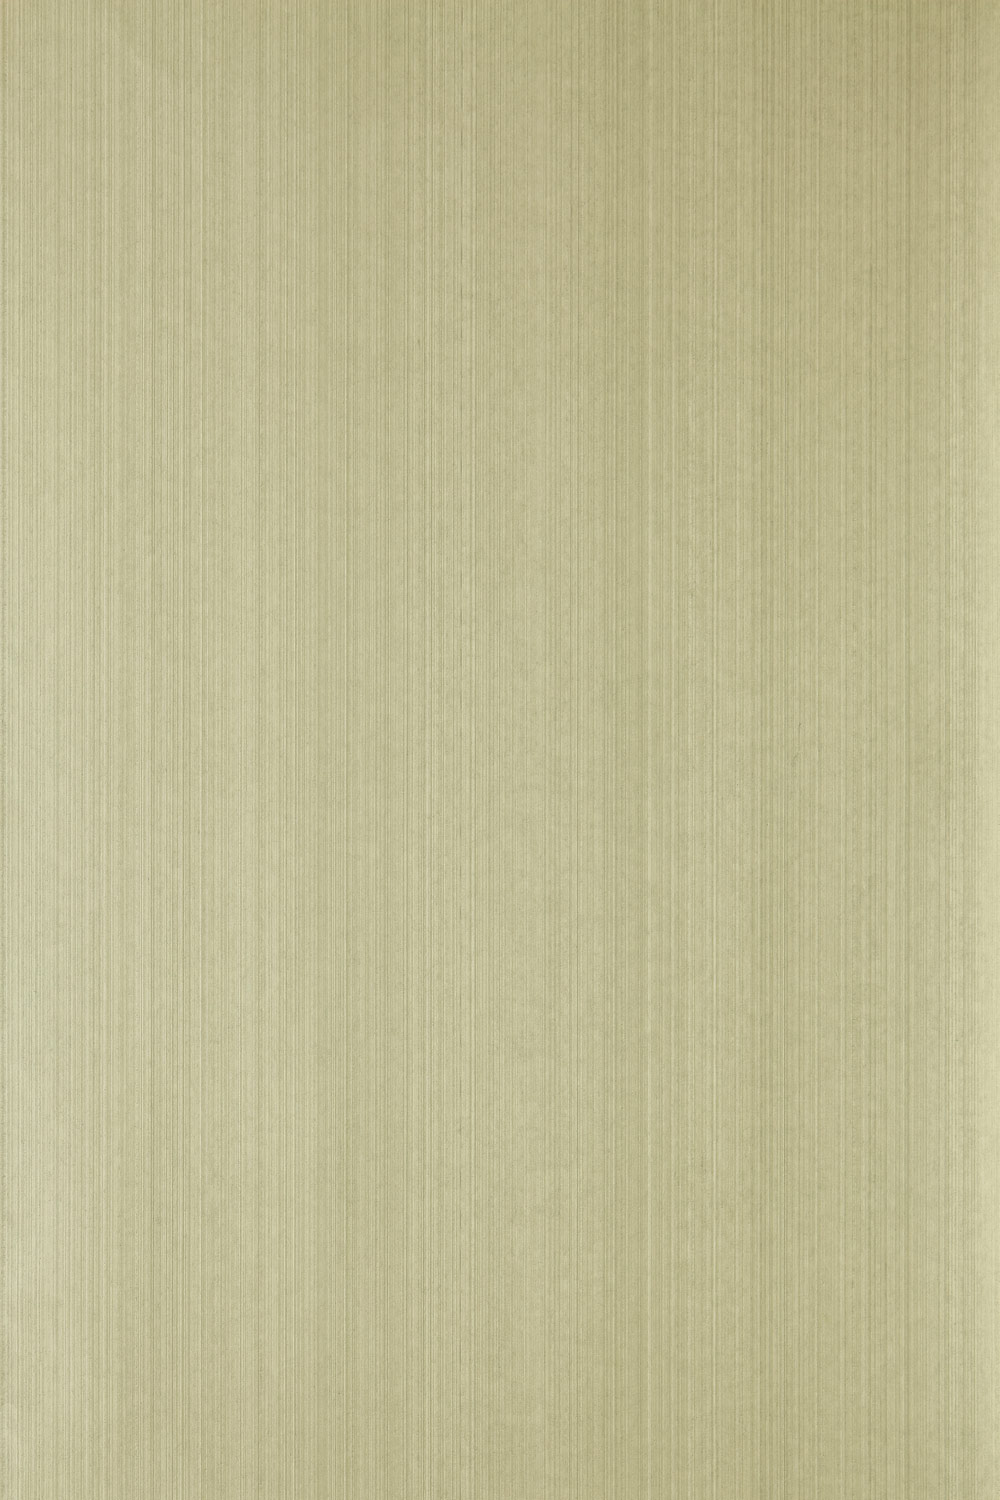 Farrow & Ball Drag DR 1221